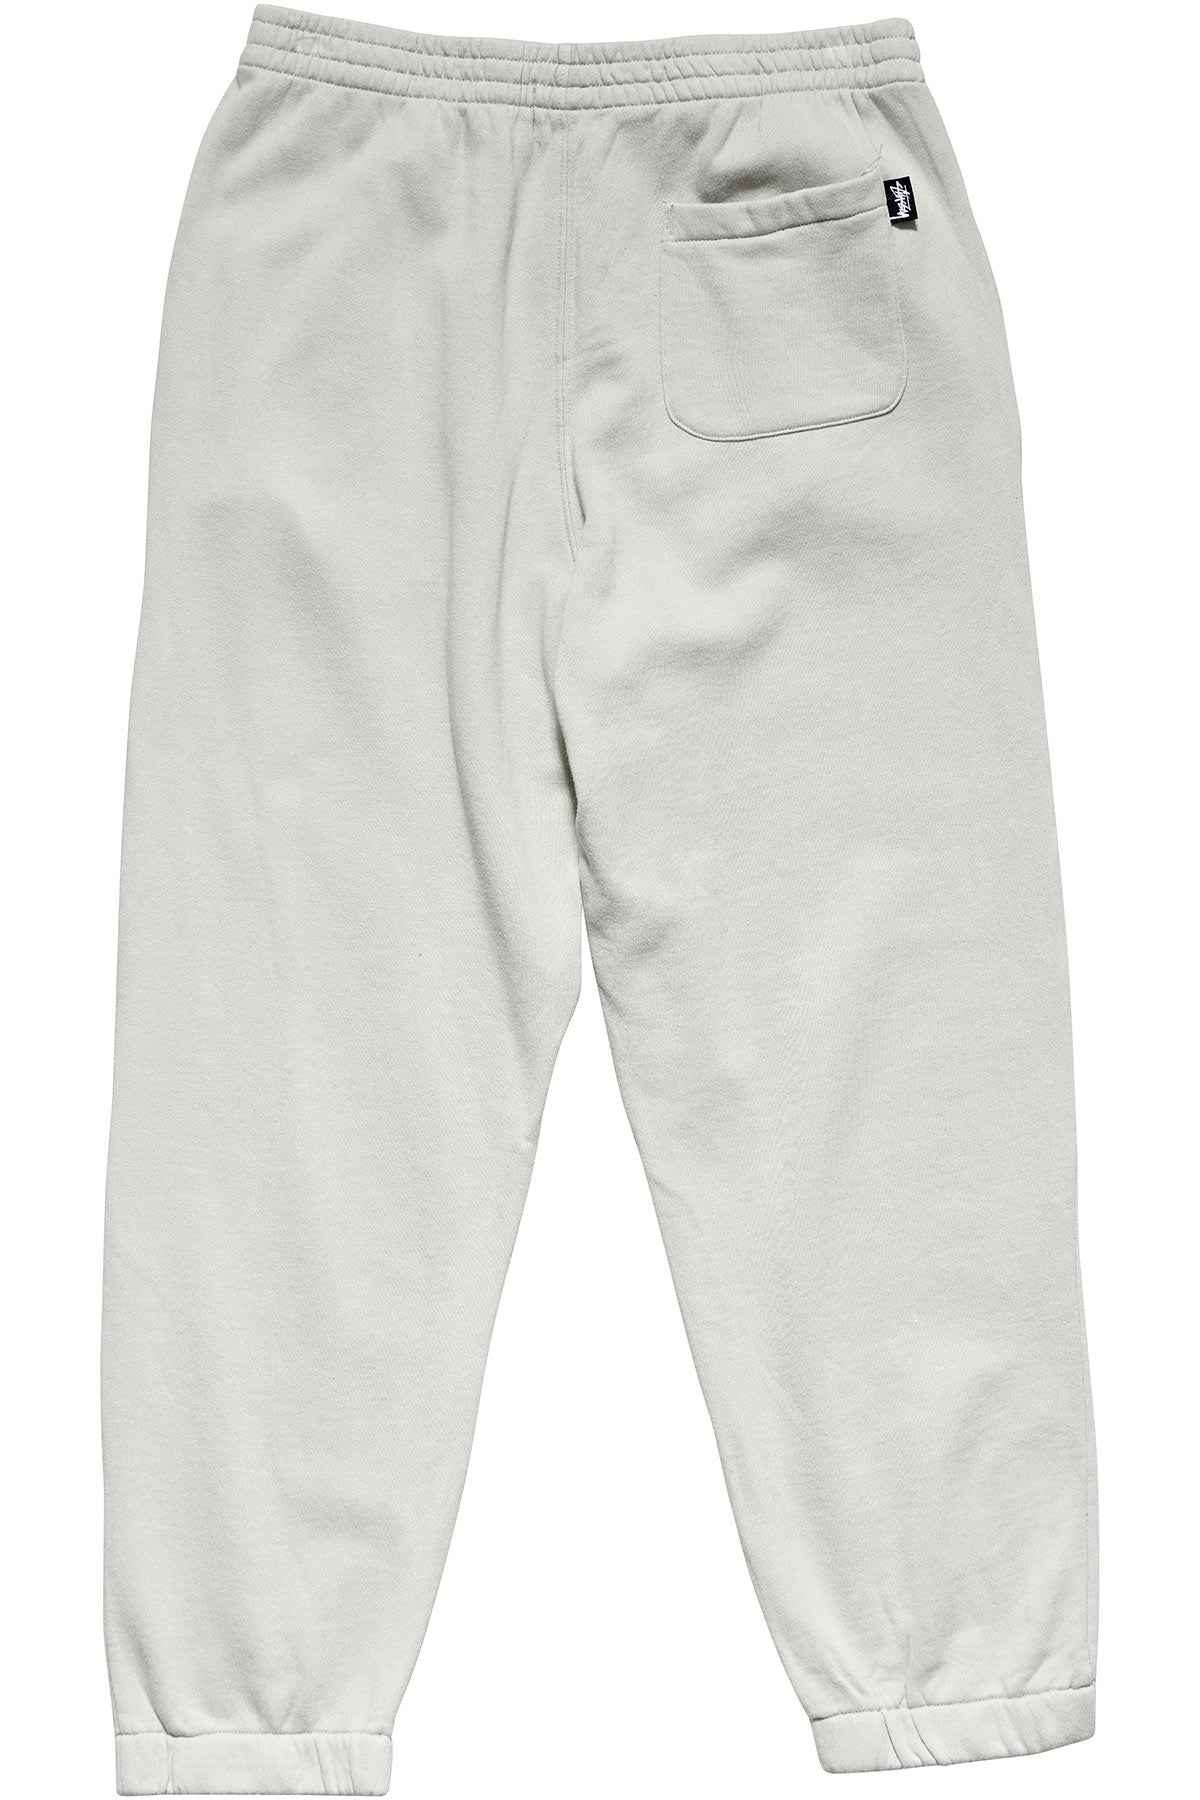 Graffiti Trackpant